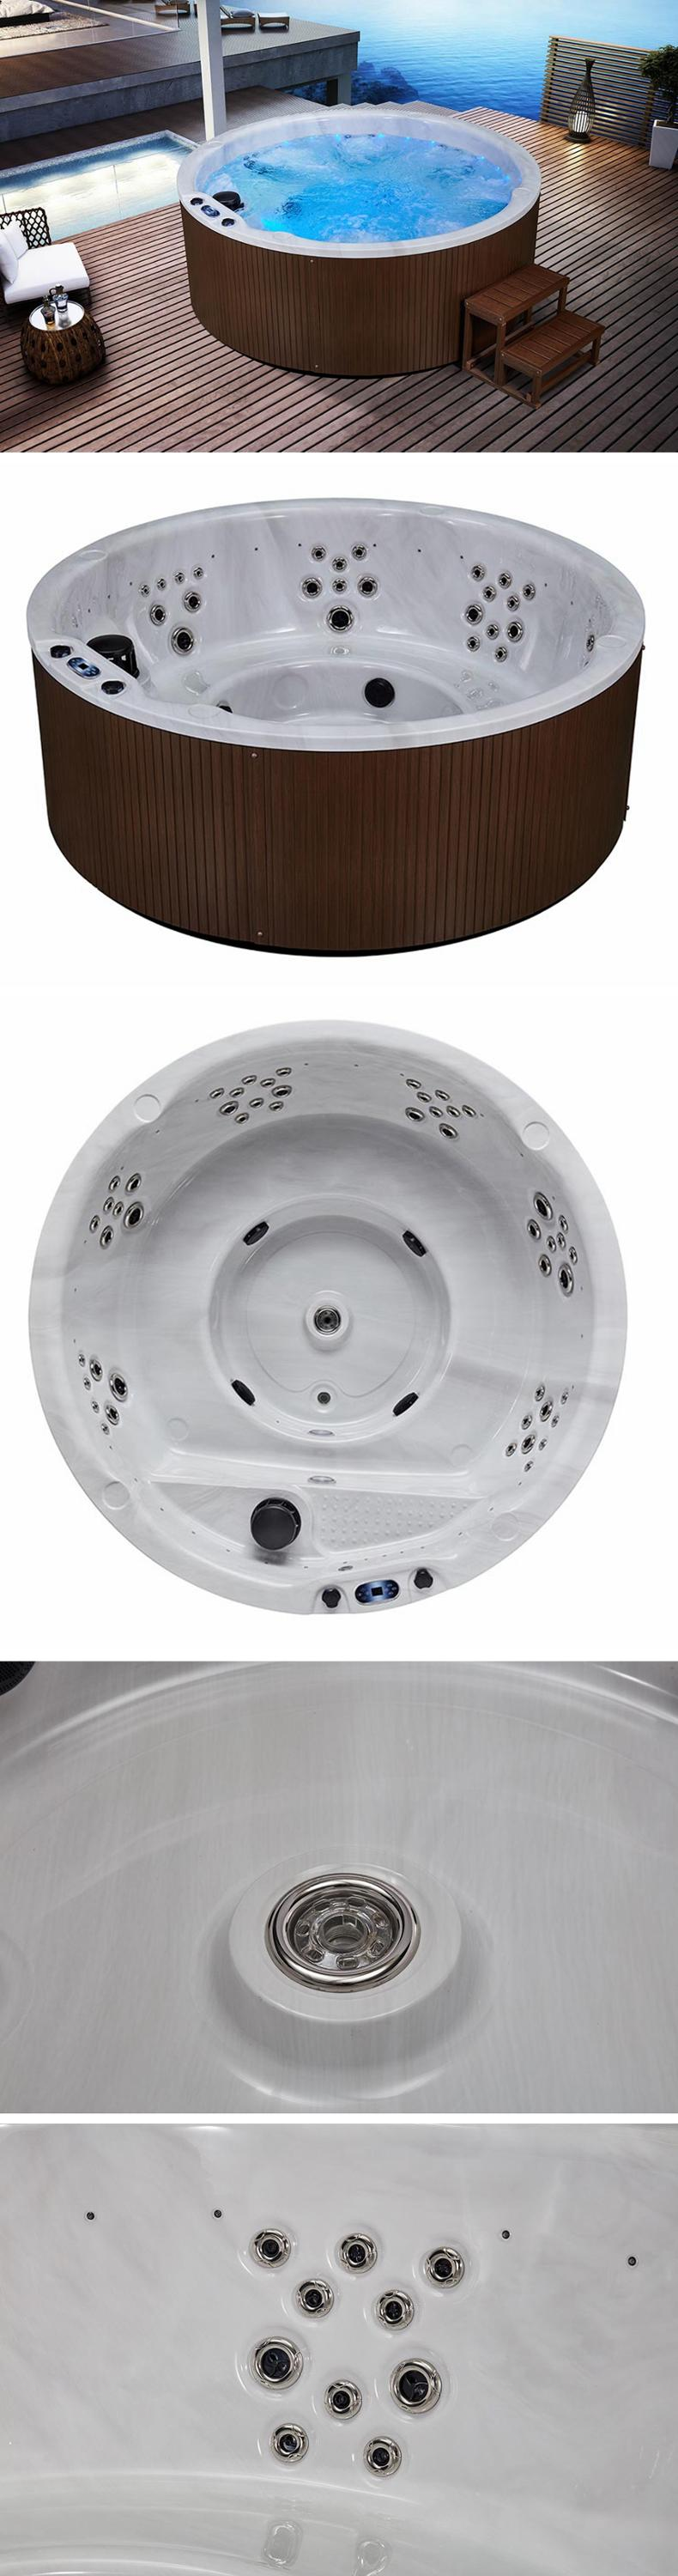 whirlpool acrylic outdoor round four person spa bathtubs